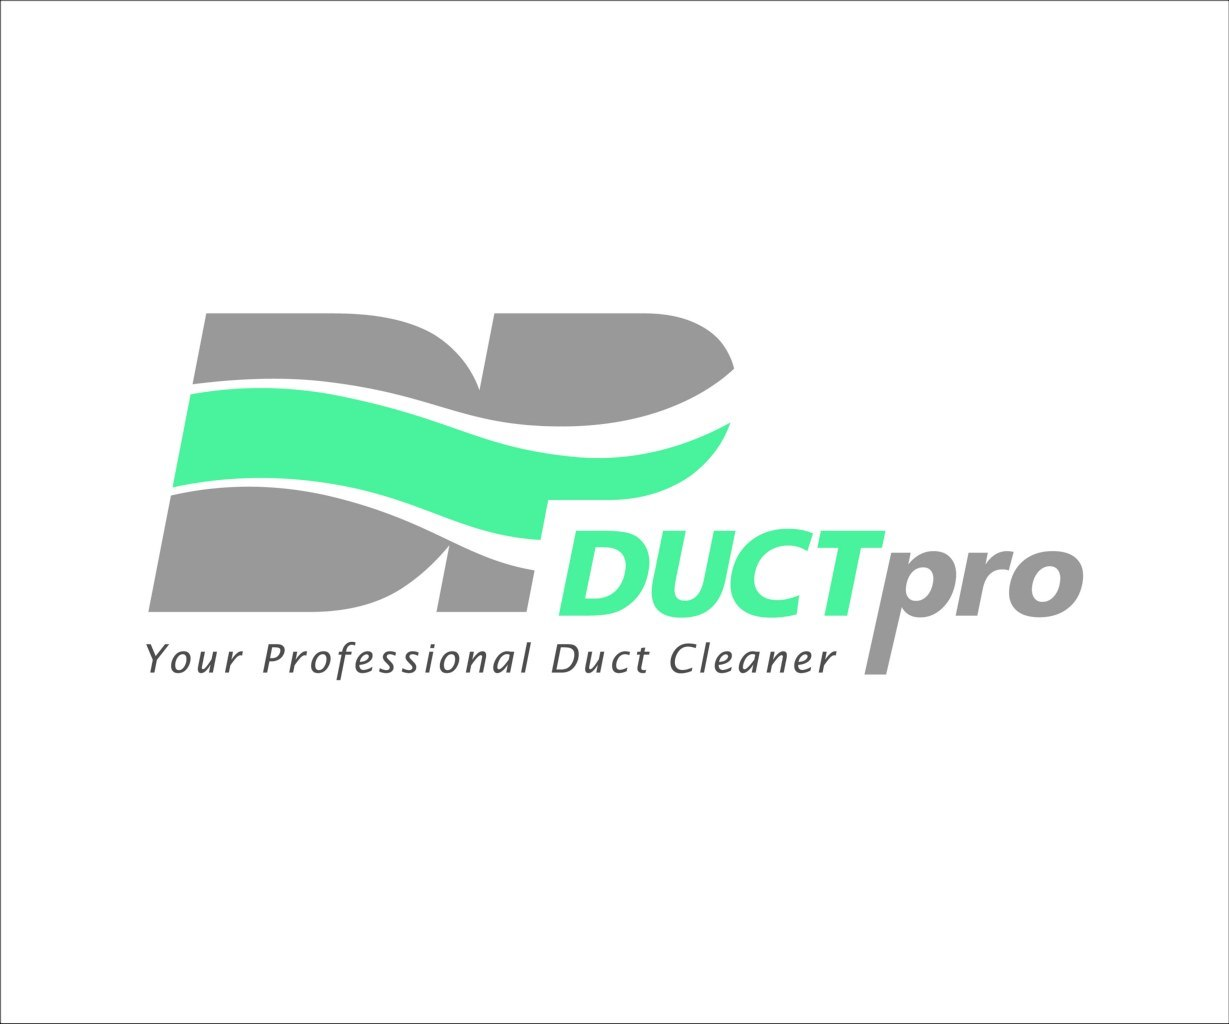 DUCTpro Your Professional Duct Cleaner  Logo,Text,Font,Line,Brand